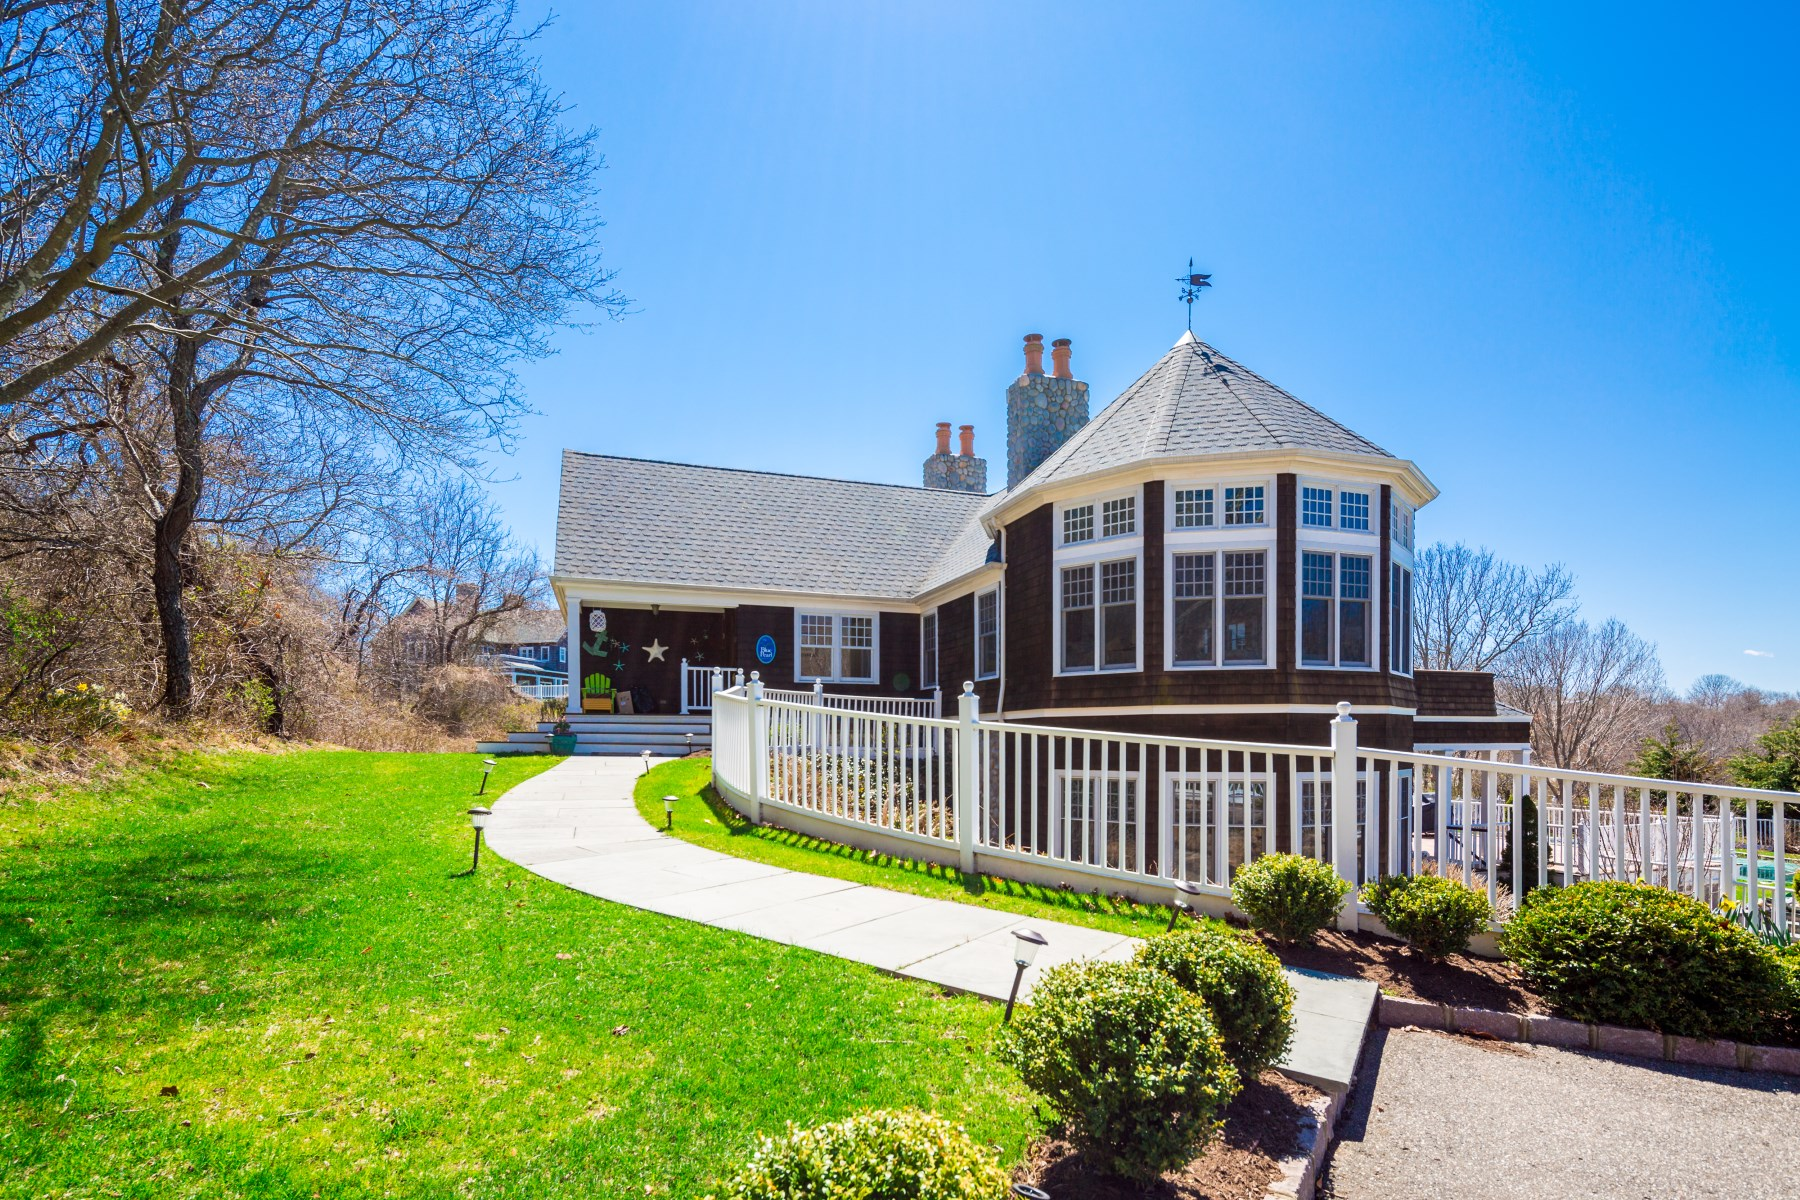 Single Family Home for Rent at Elegant Victorian With Spectacular Views Montauk, New York 11954 United States